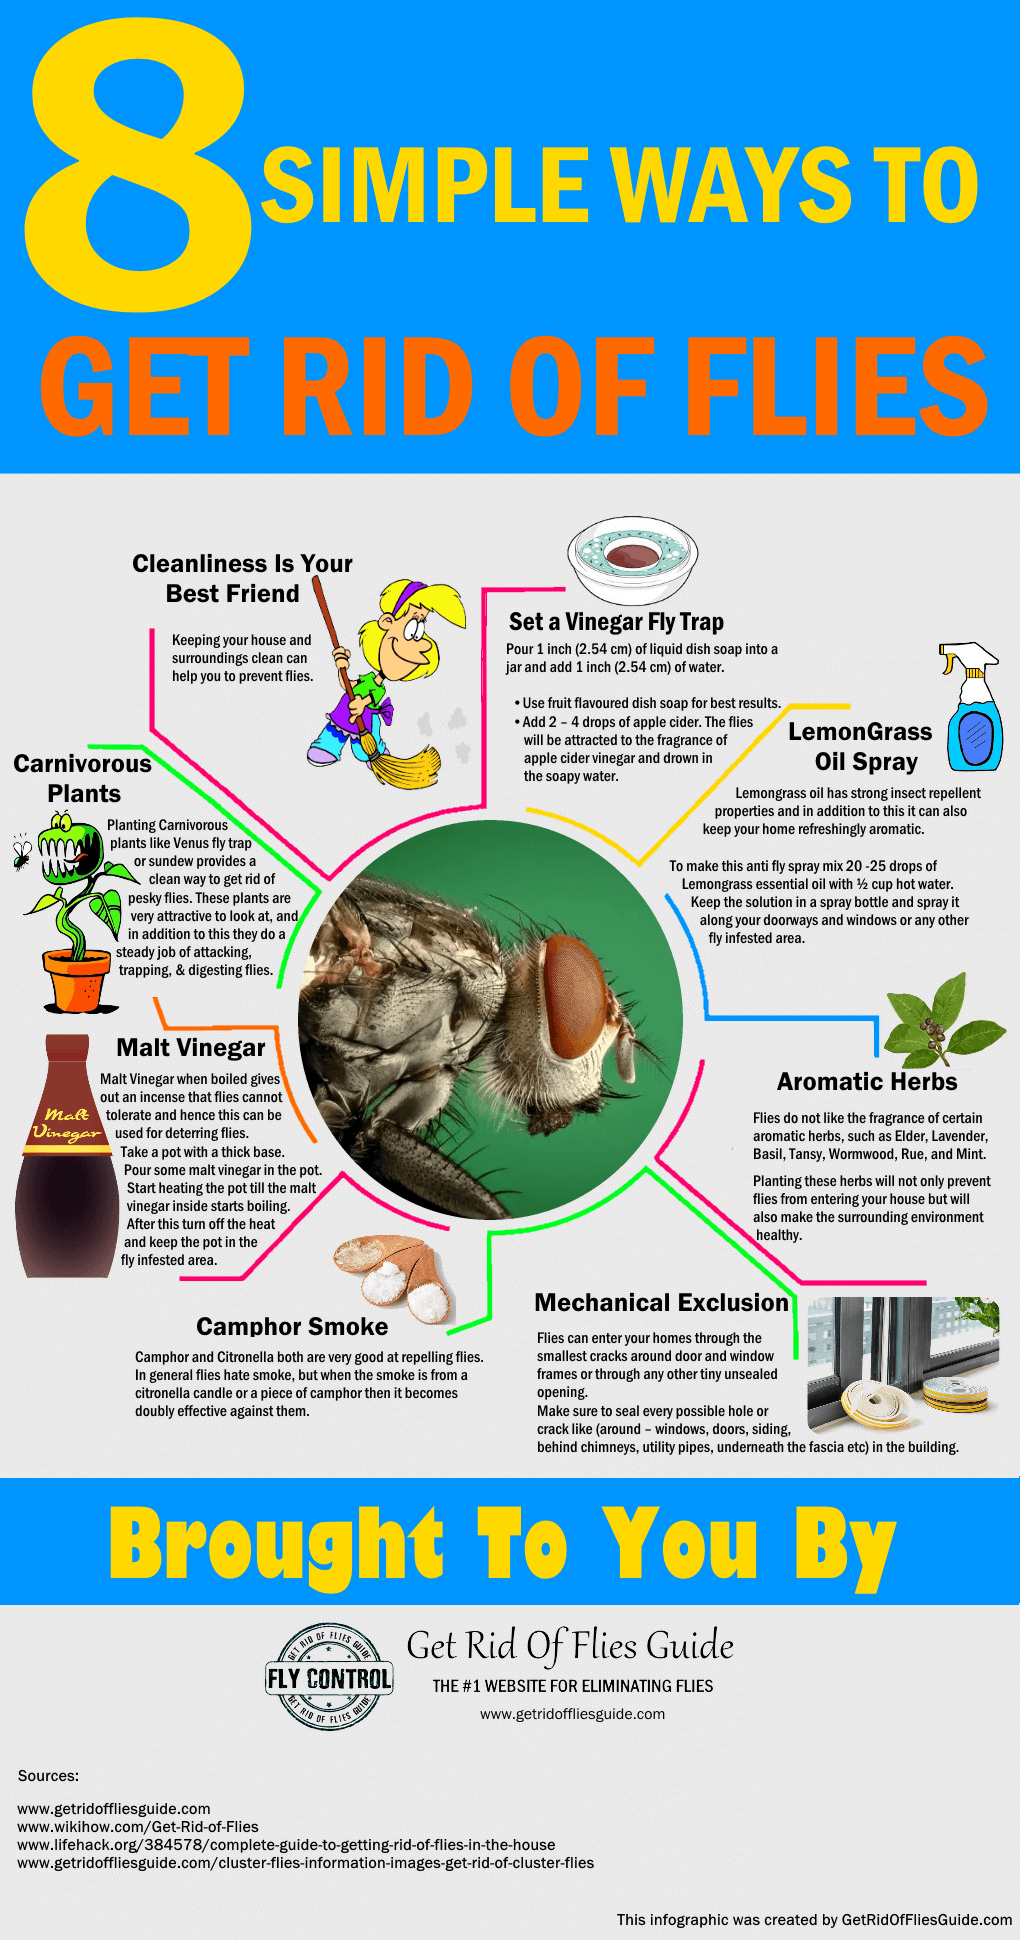 Getting Rid Of Flies Easily - Infographic